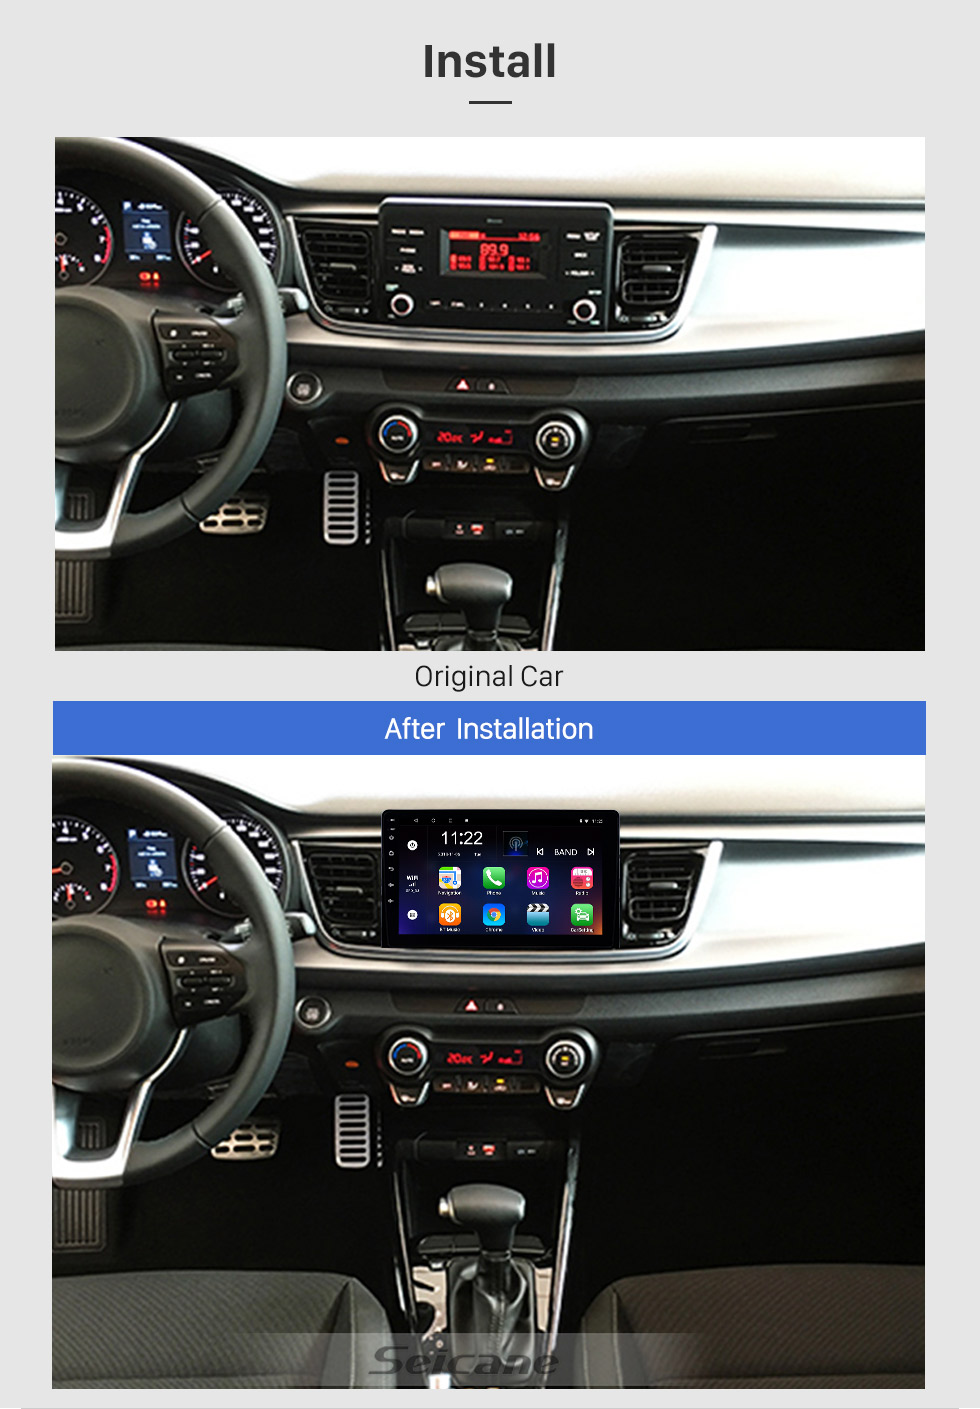 Seicane Android 8.1 9 inch HD Touchscreen GPS Navigation Radio for 2017 2018 2019 Kia Rio with Bluetooth USB WIFI support Carplay Digital TV Mirror Link